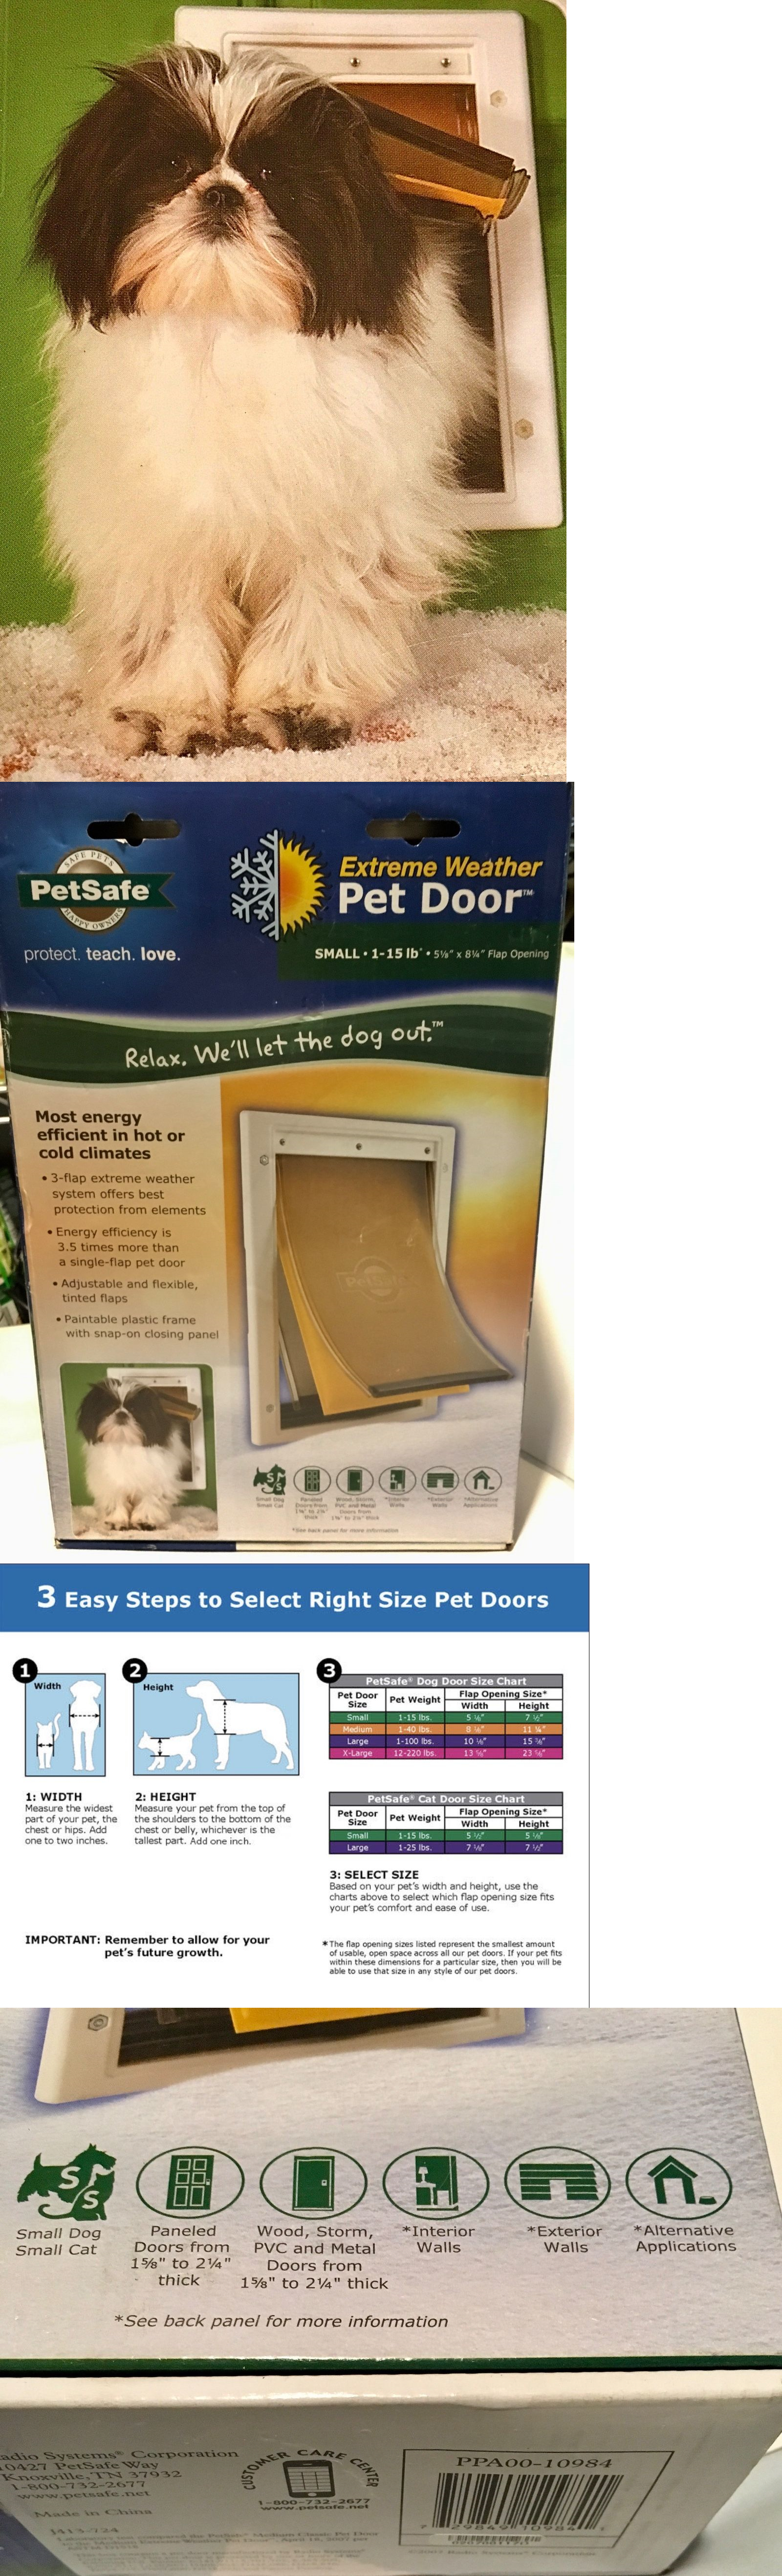 door pin telescoping weather wall large doors flaps and extreme entry pet aluminum petsafe with tunnel